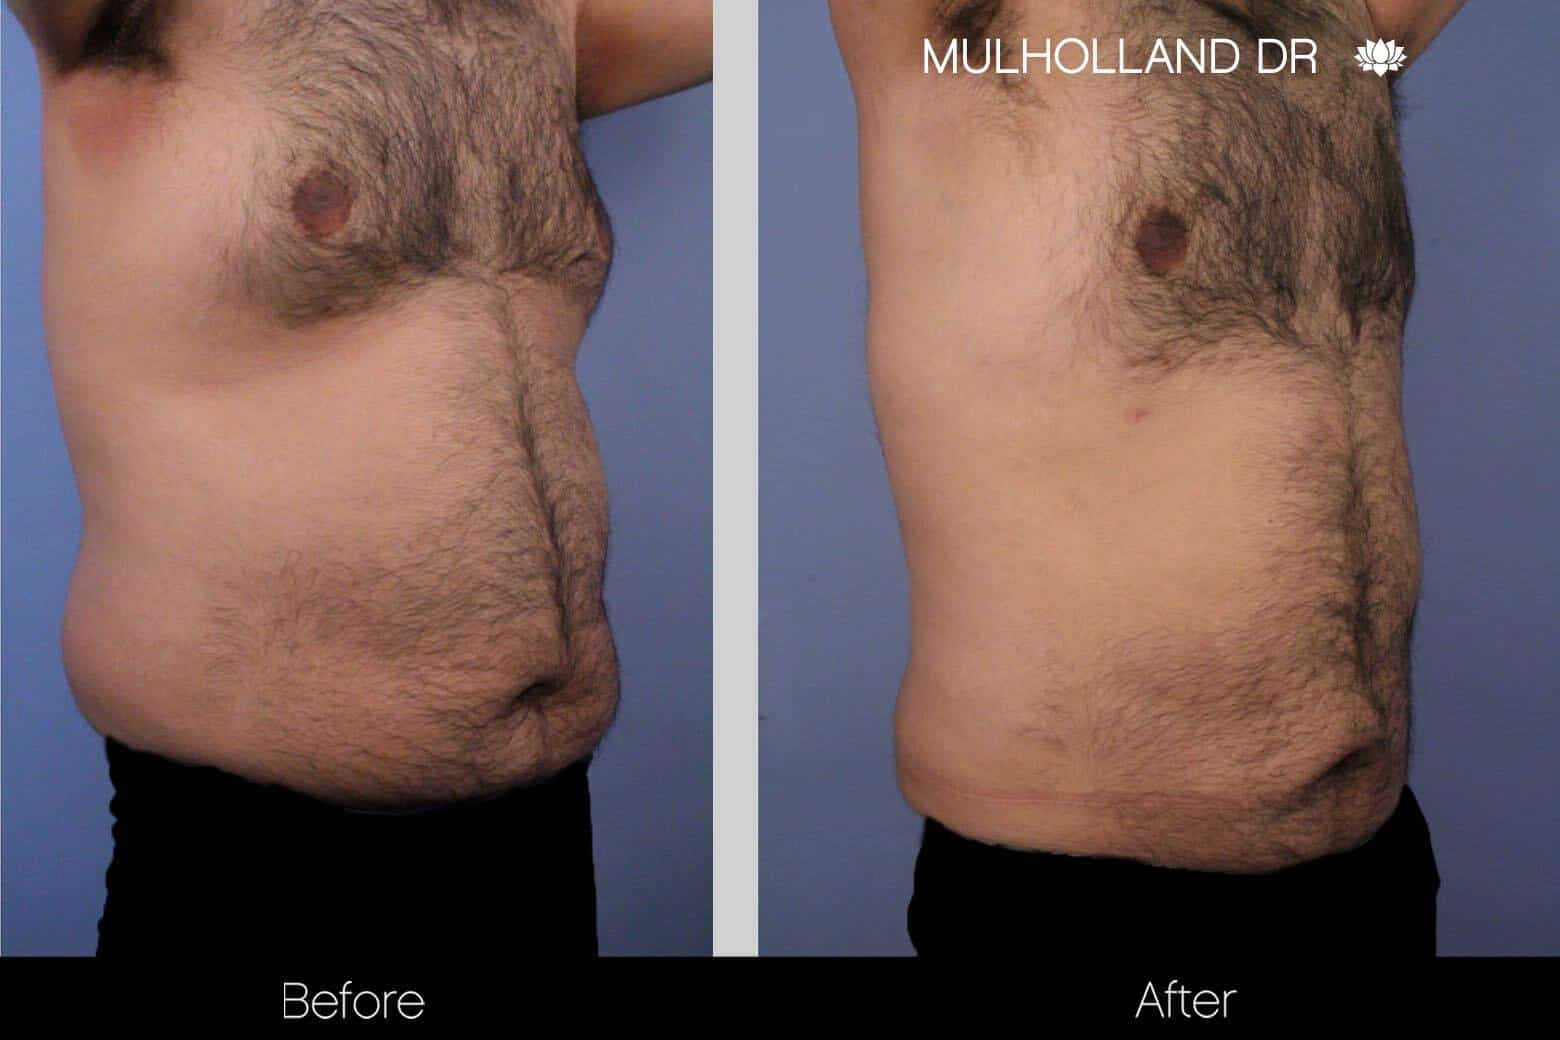 Abdomen Liposuction - Before and After Gallery - Patient Photo 9